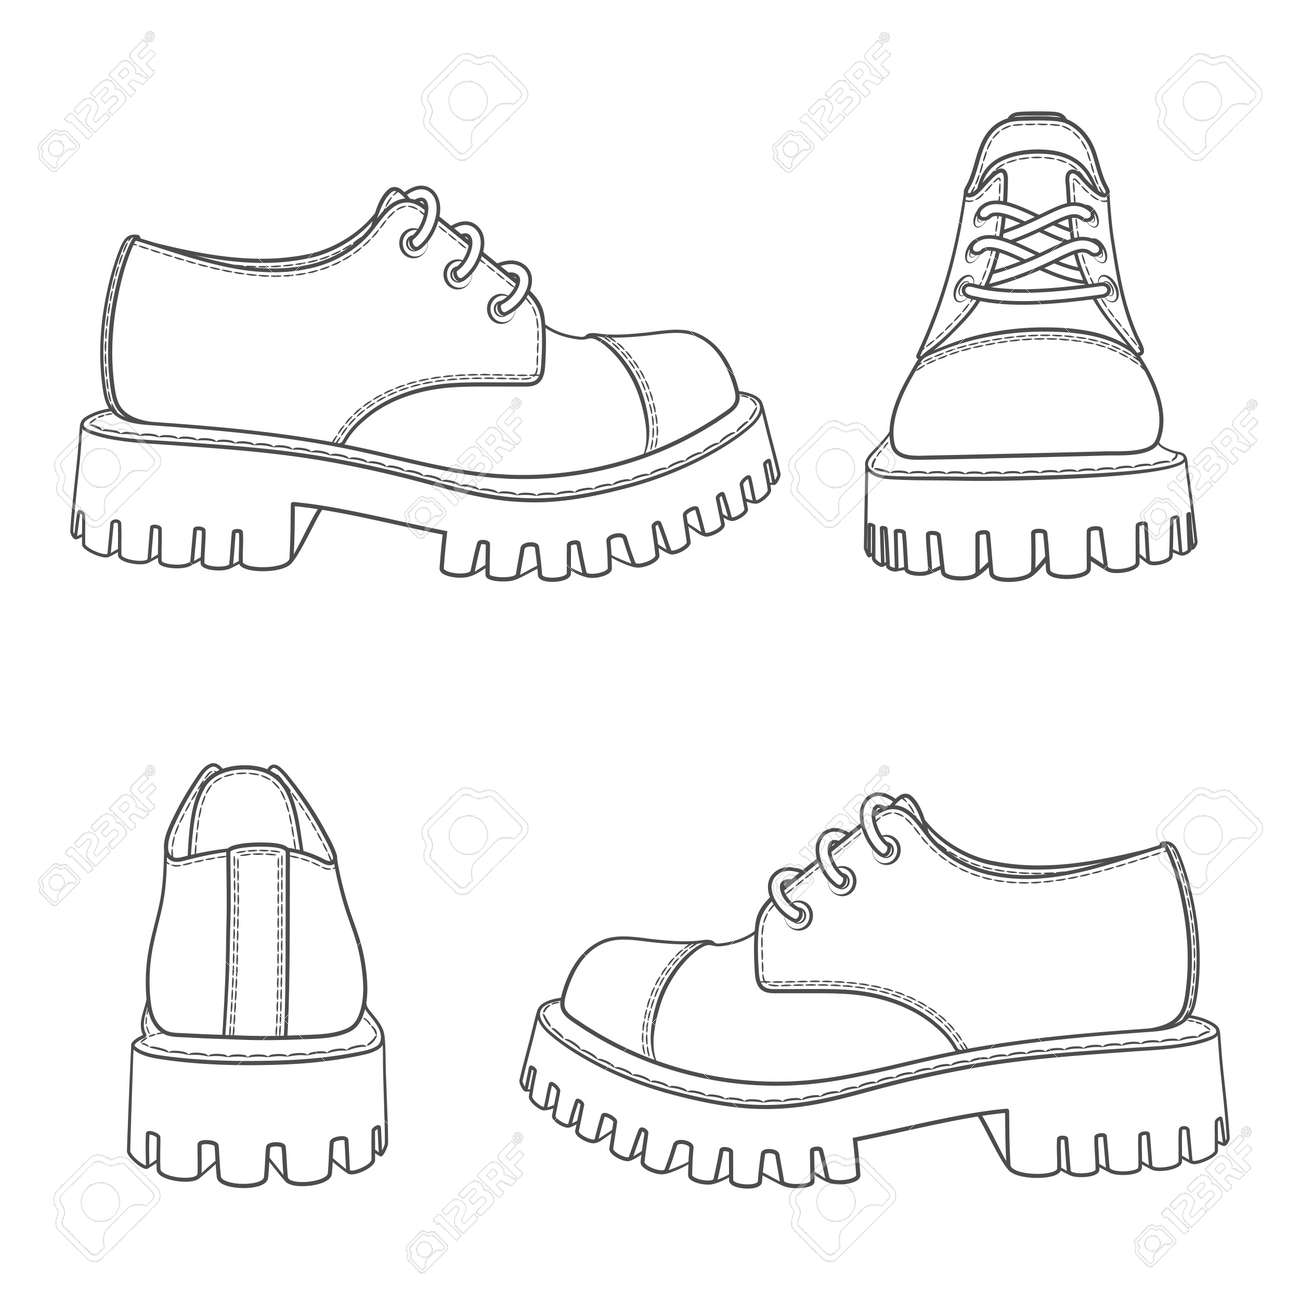 Set of black and white illustrations with boots. Isolated vector objects on white background. - 158610394